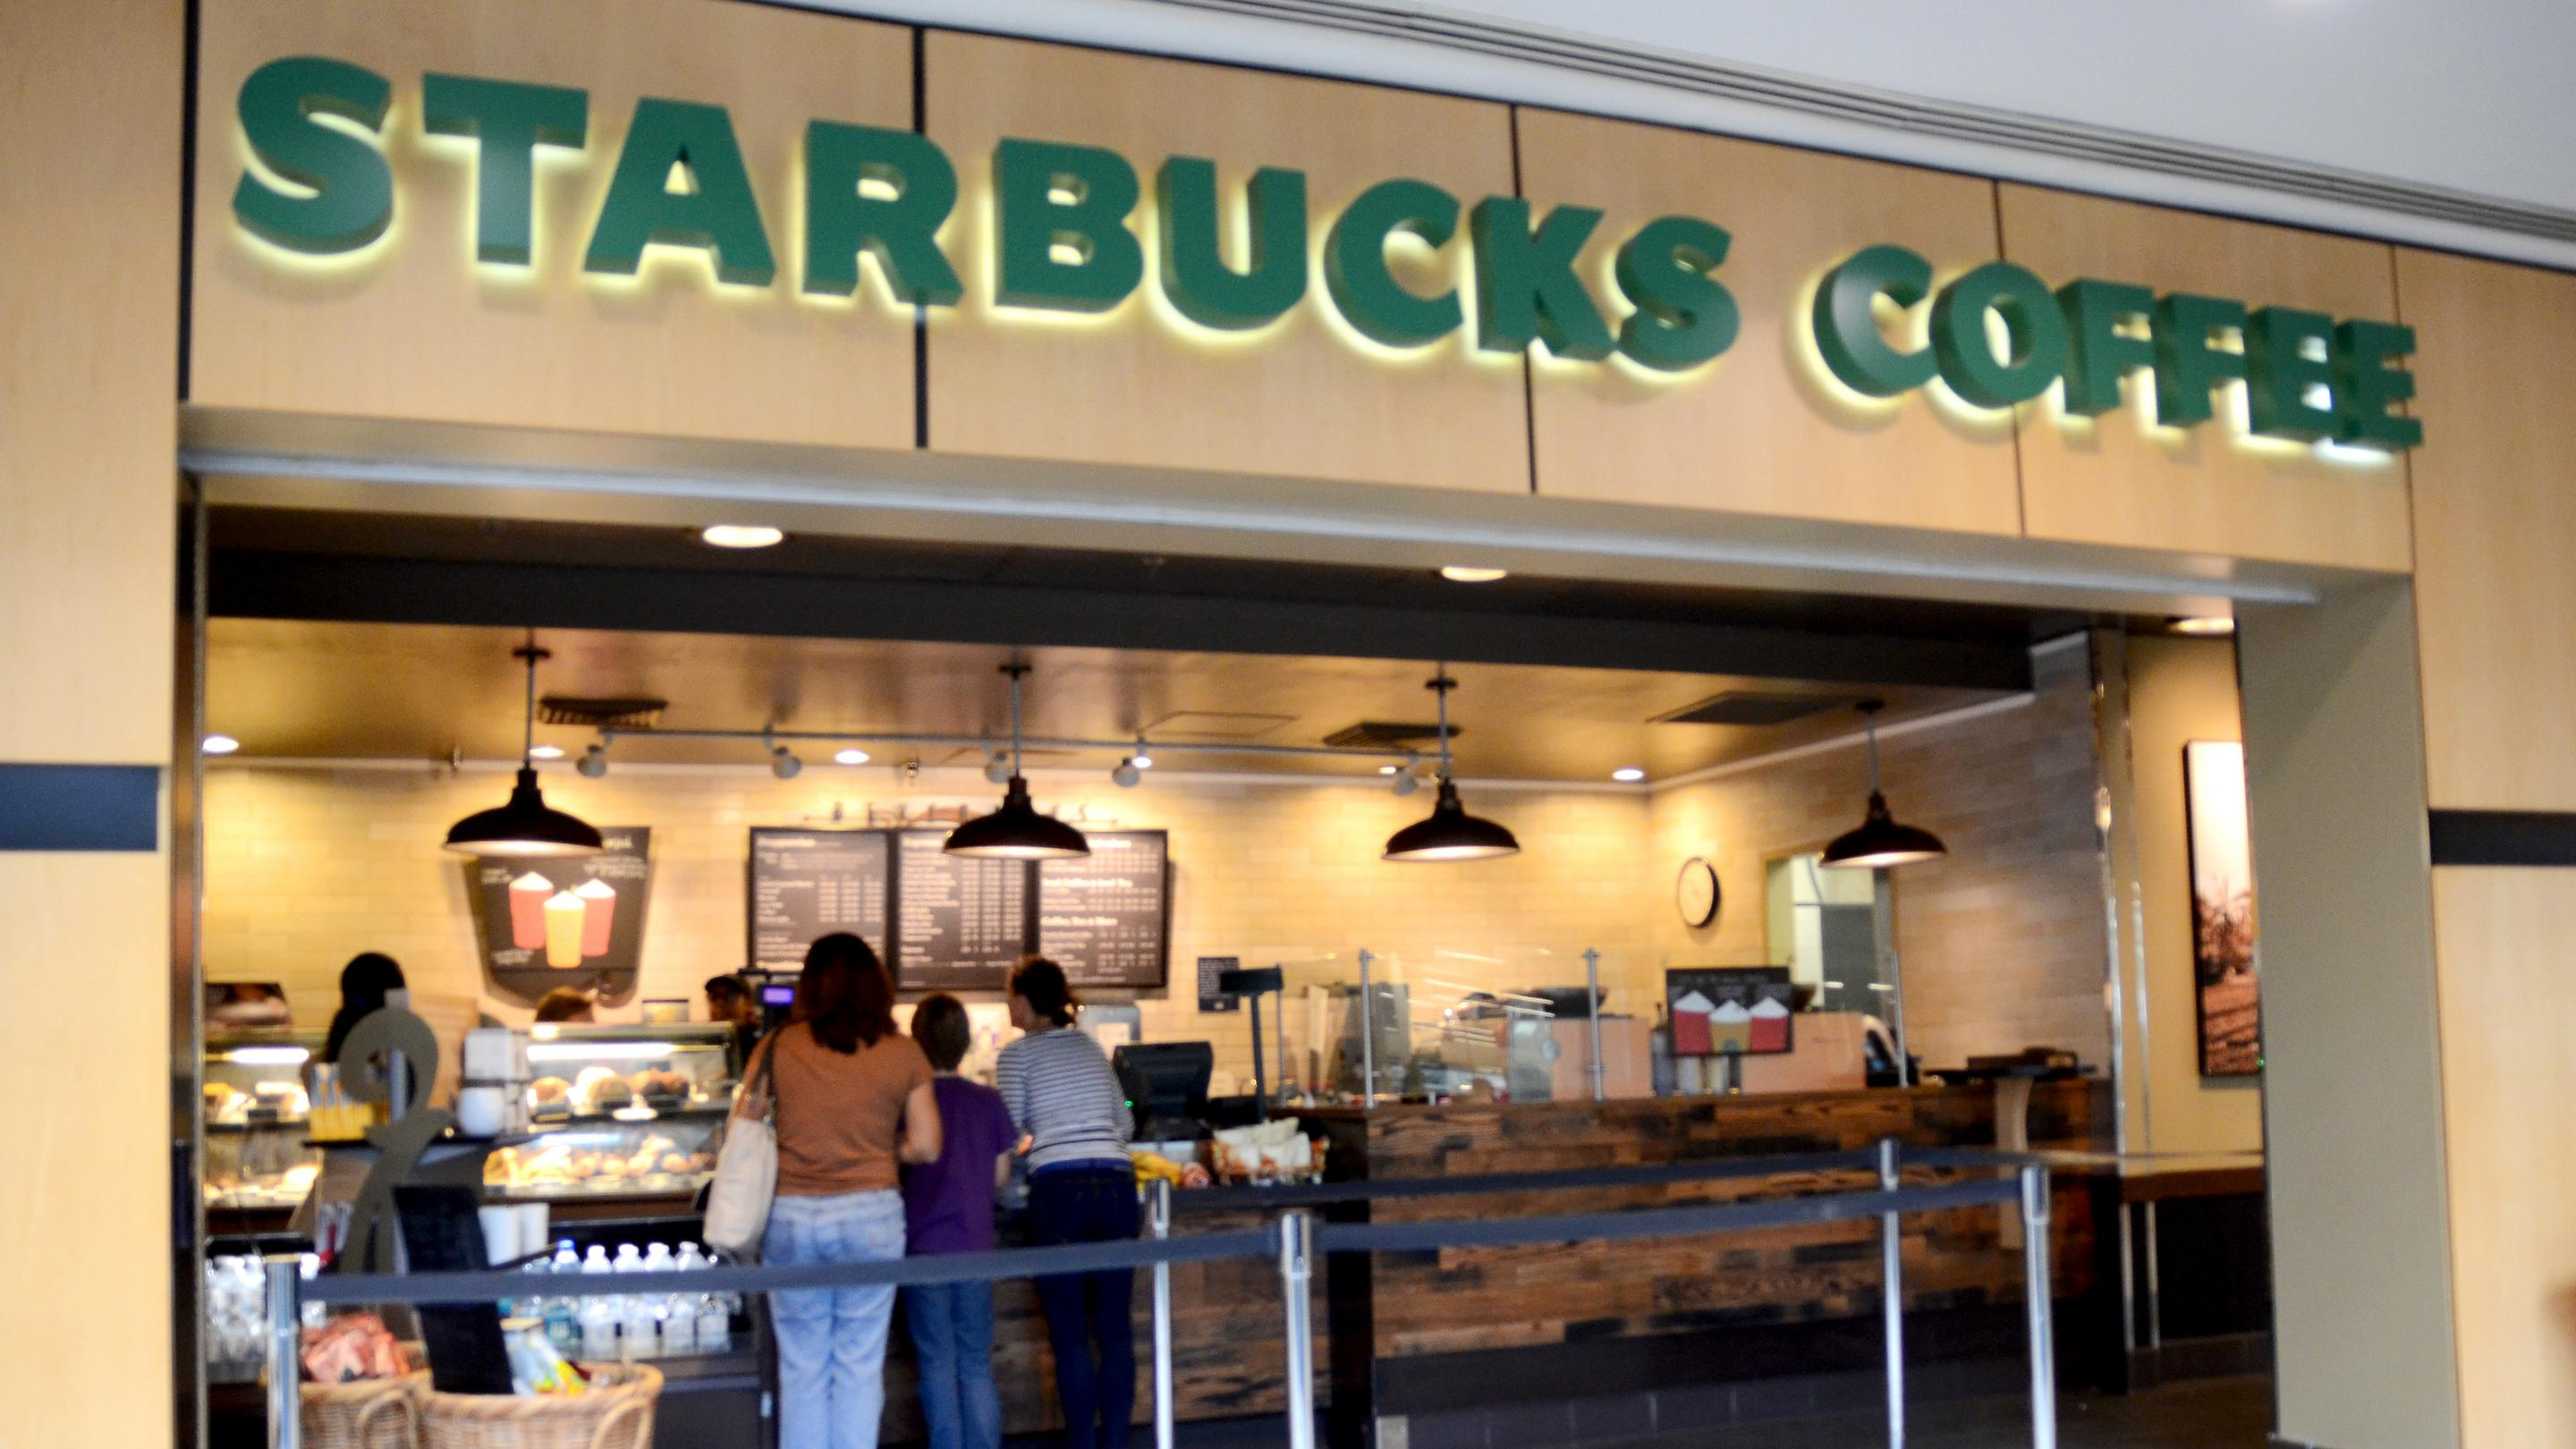 How well do you know Starbucks?